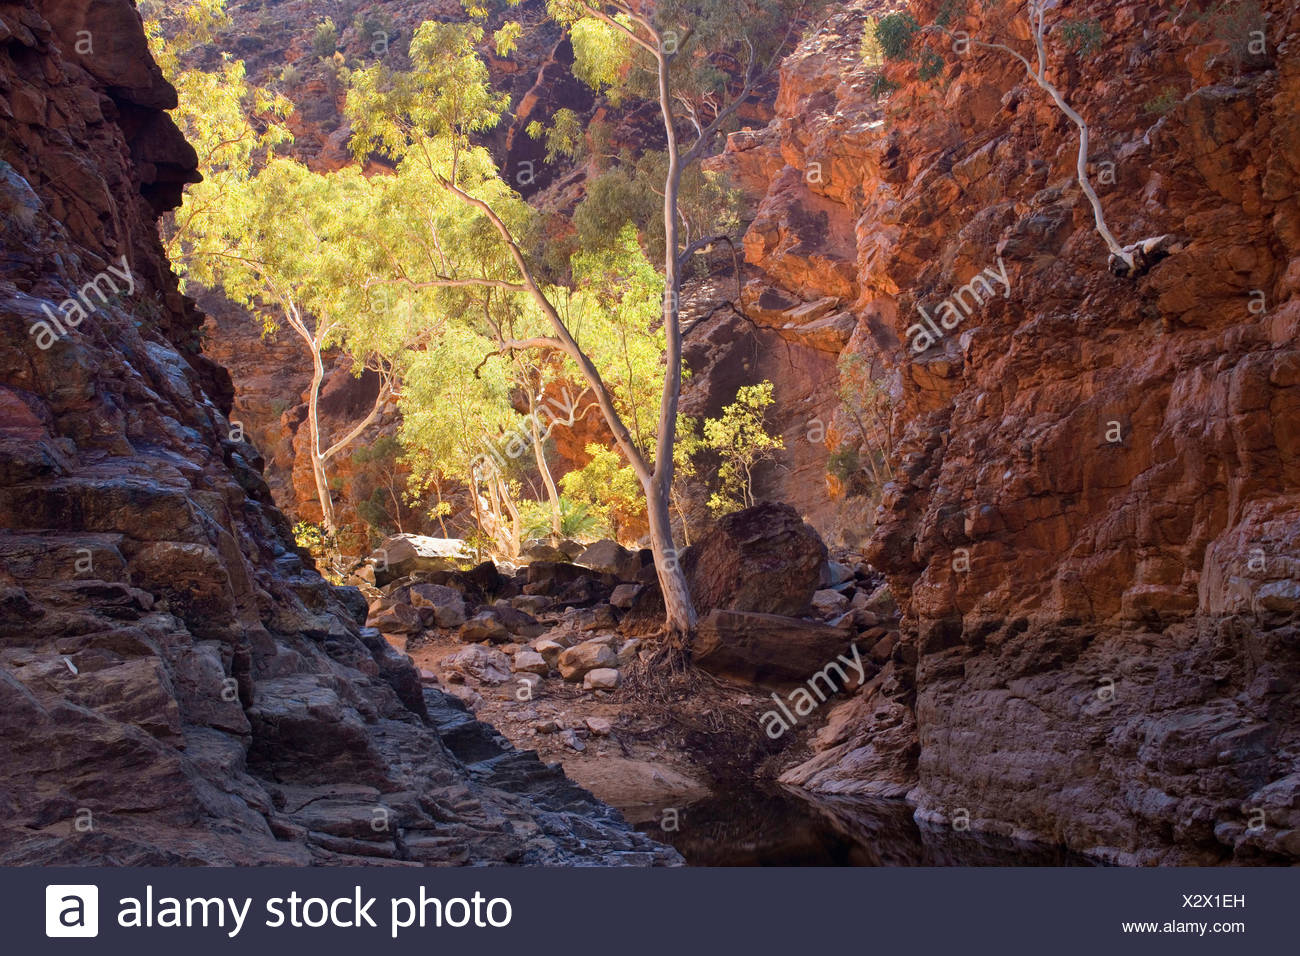 towering red cliffs at the entrance of Serpentinge Gorge and a semi-permanent waterhole, Australia, Northern Territory, West MacDonnell National Park, Serpentine Gorge - Stock Image